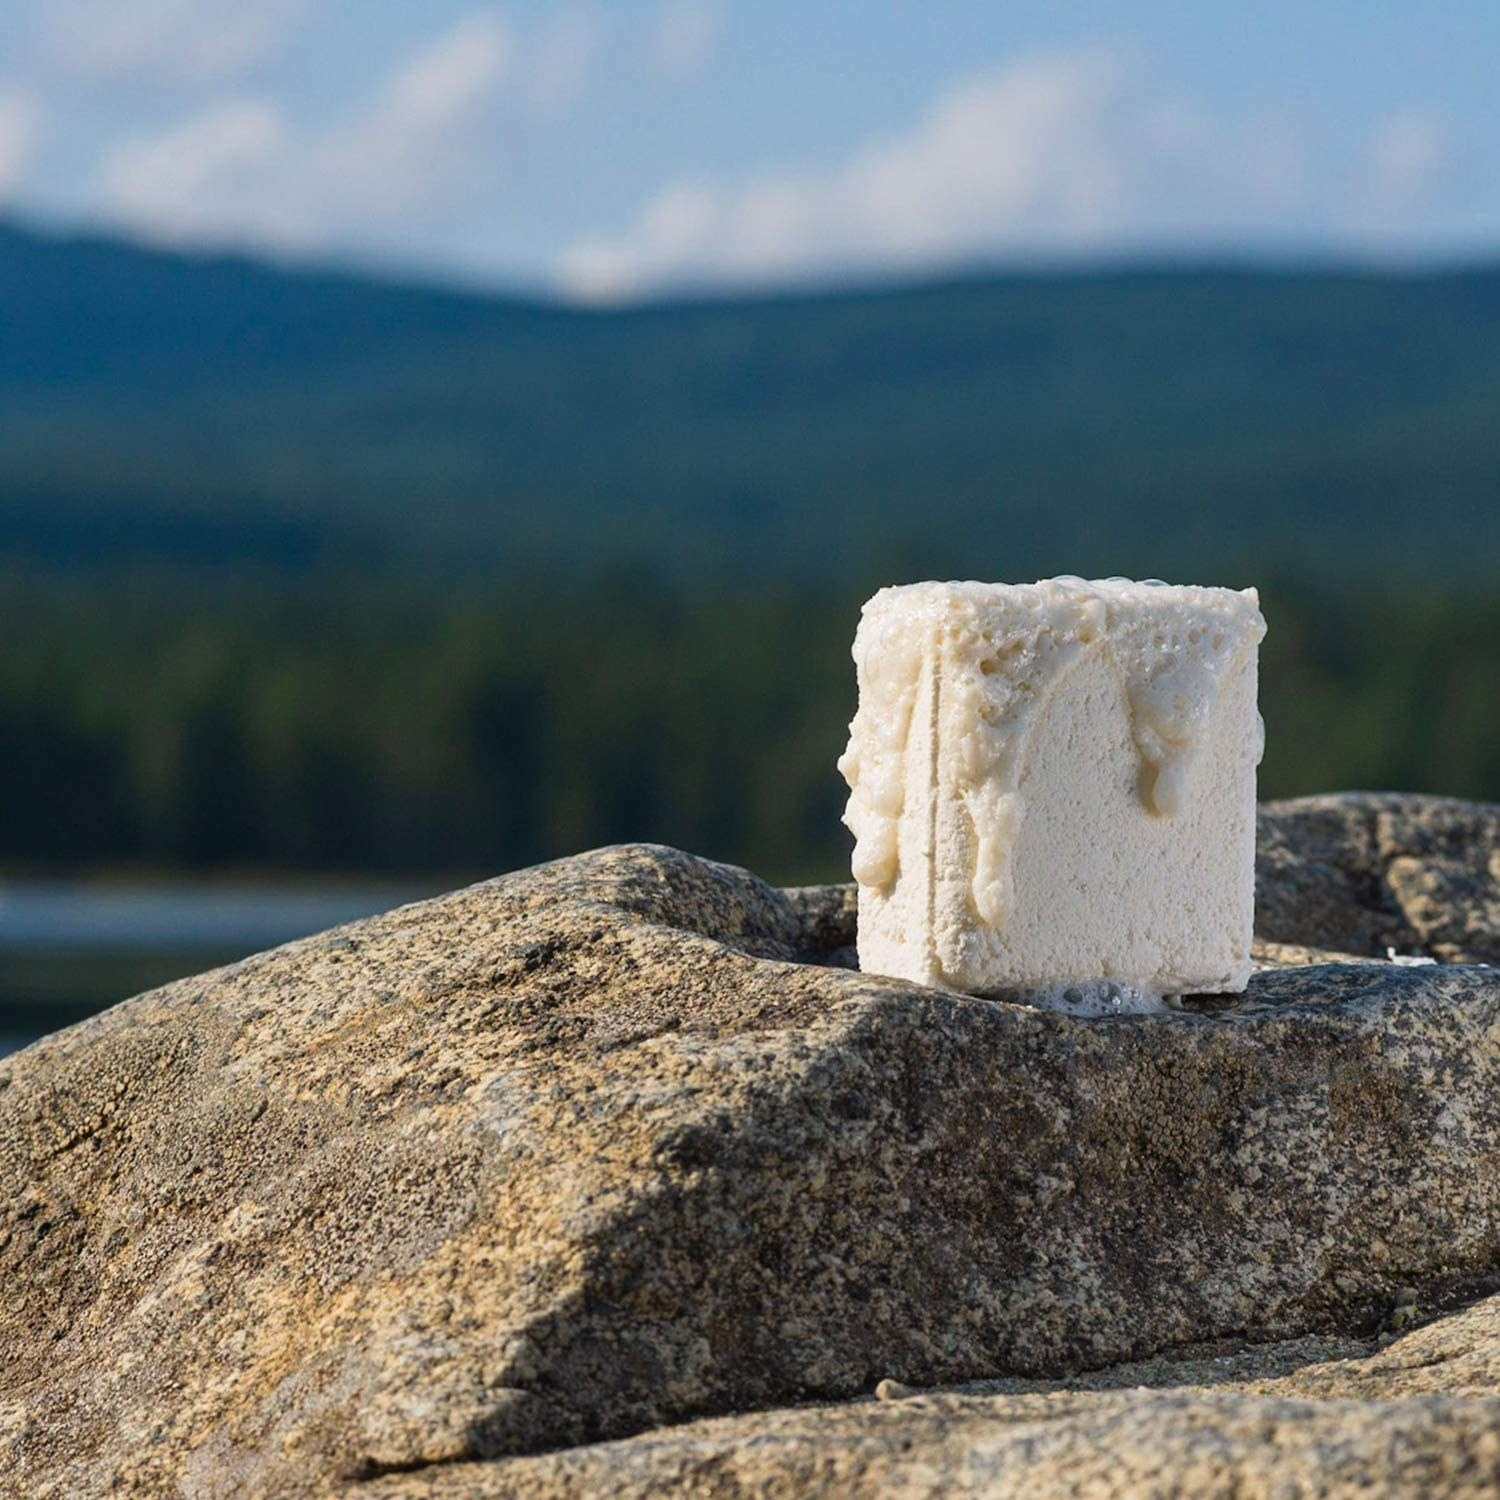 A square-shaped shower steamer on a large rock